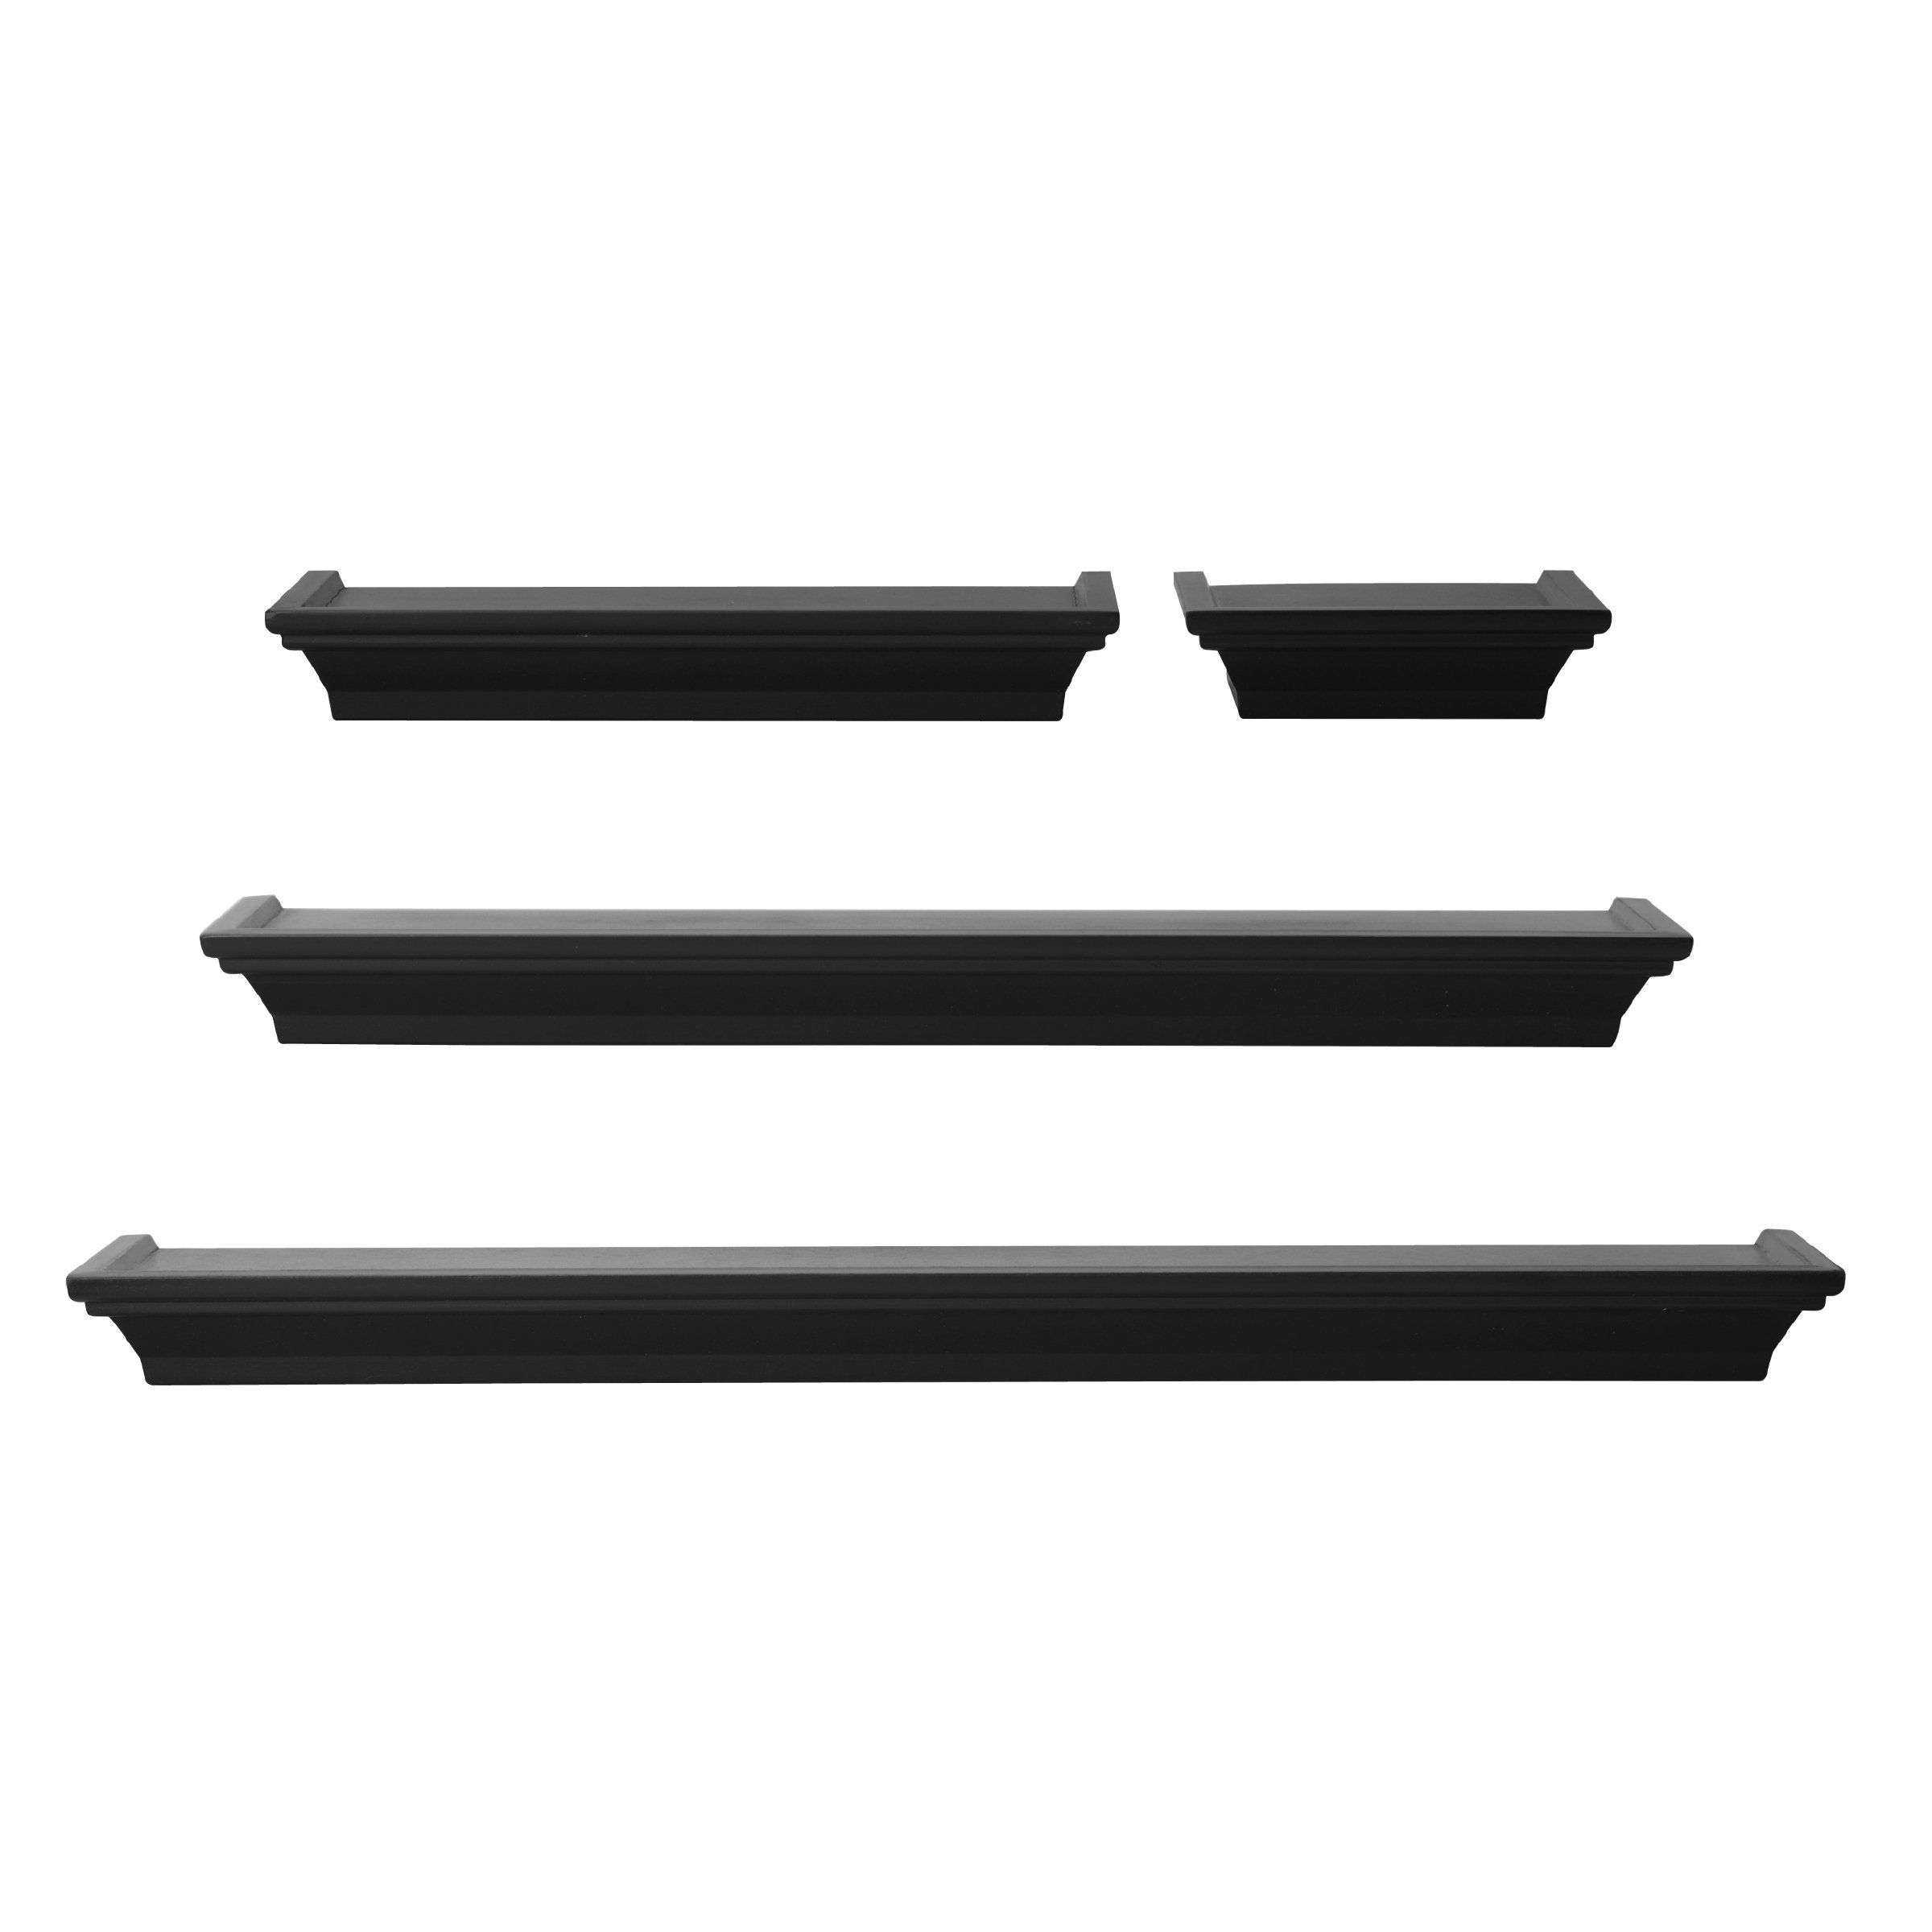 MELANNCO Wall Shelves, Set of 4, Black by MELANNCO